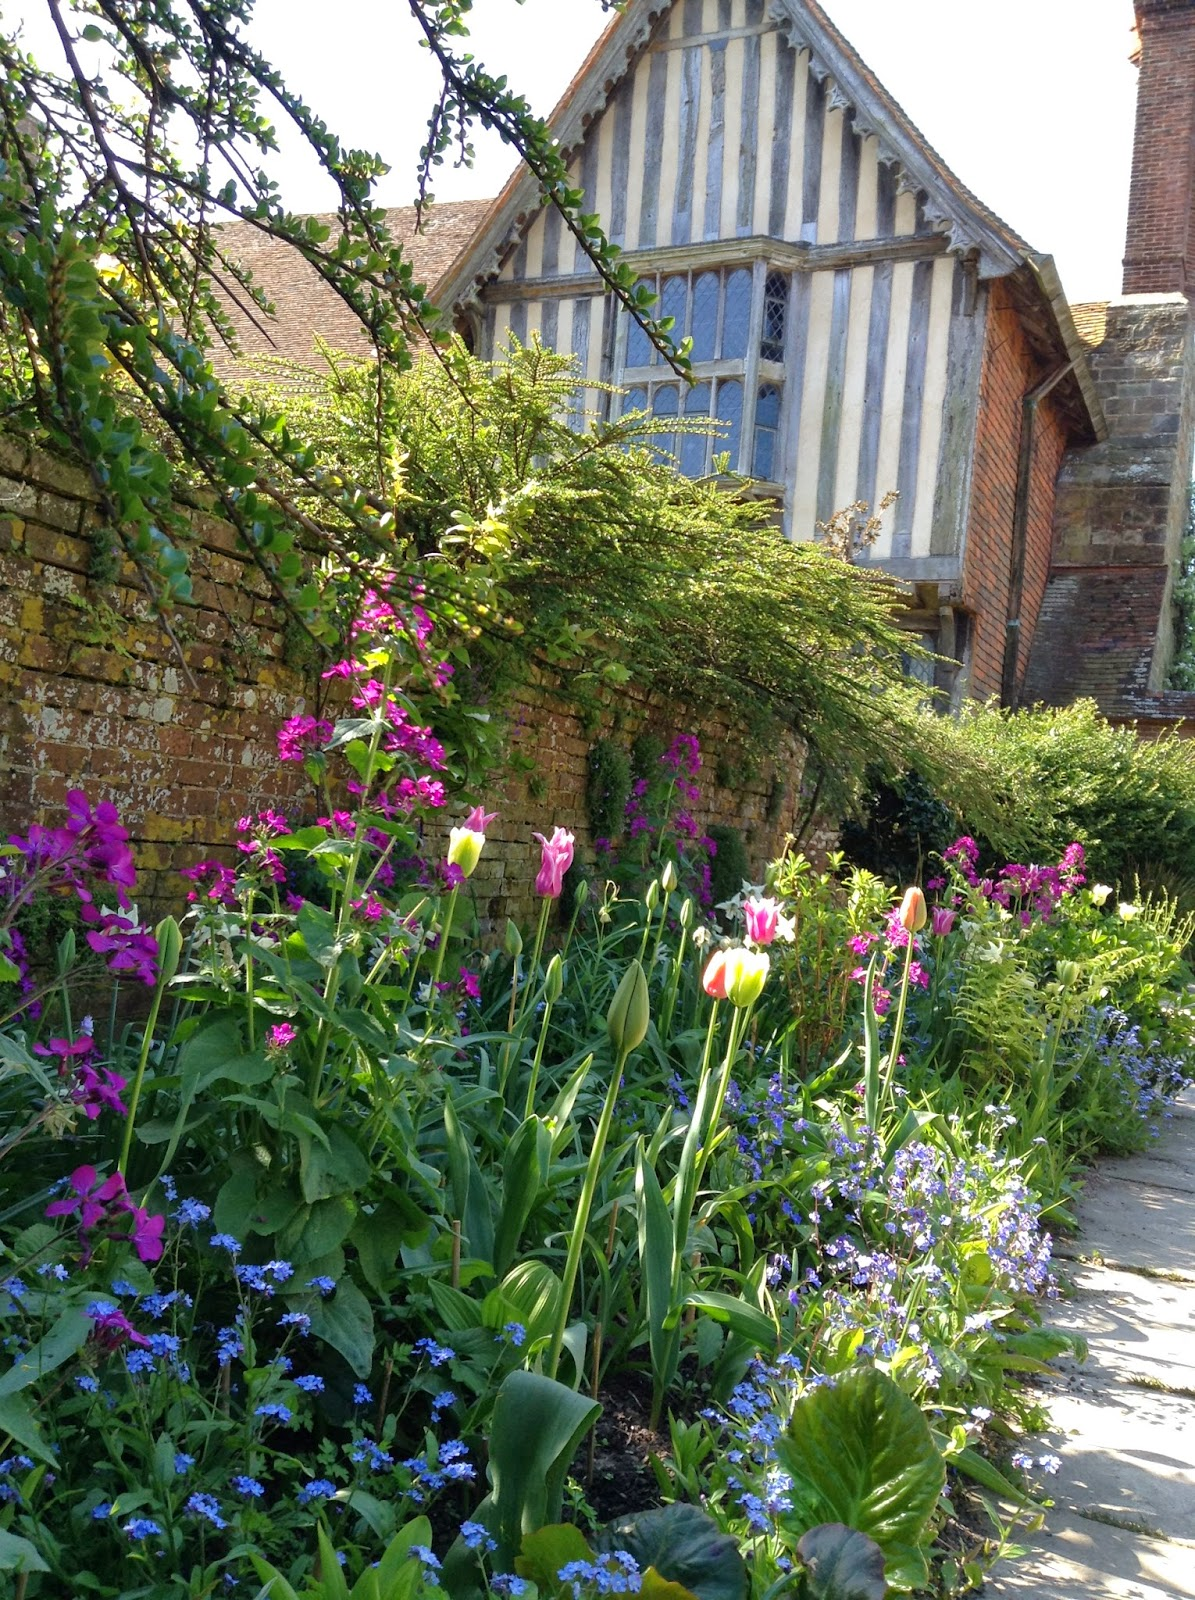 One of the most well-know Garden Design principles: Repetition is the Key! - Tulips, Myosotis, Lunaria annua in the Wall Garden, Great Dixter - Photo by Noemi Mercurelli